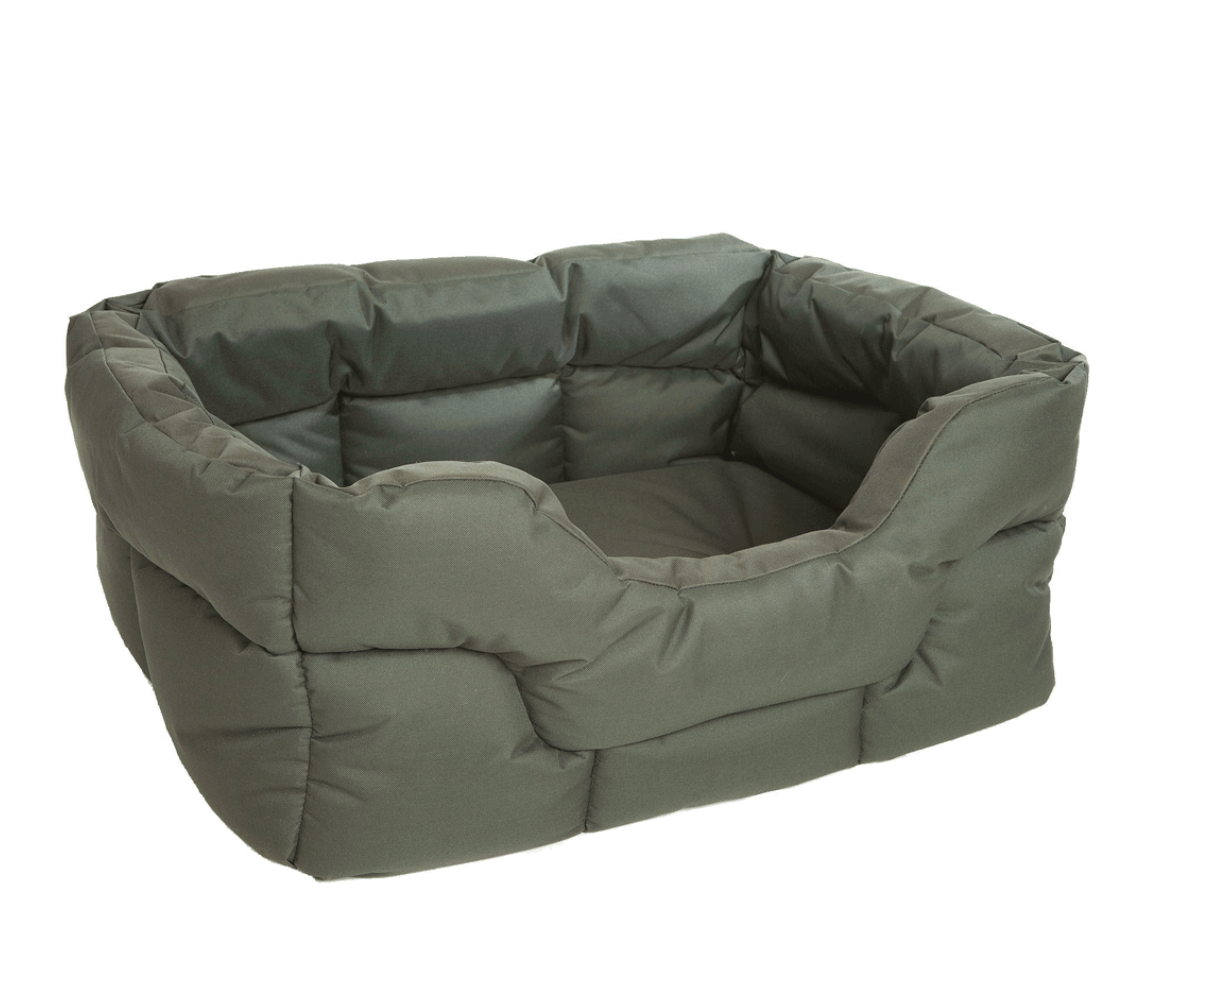 P&L Country Dog Tough Heavy Duty Rectangular High Sided Waterproof Dog Beds in 3 Sizes Medium, Large & XL/Jumbo